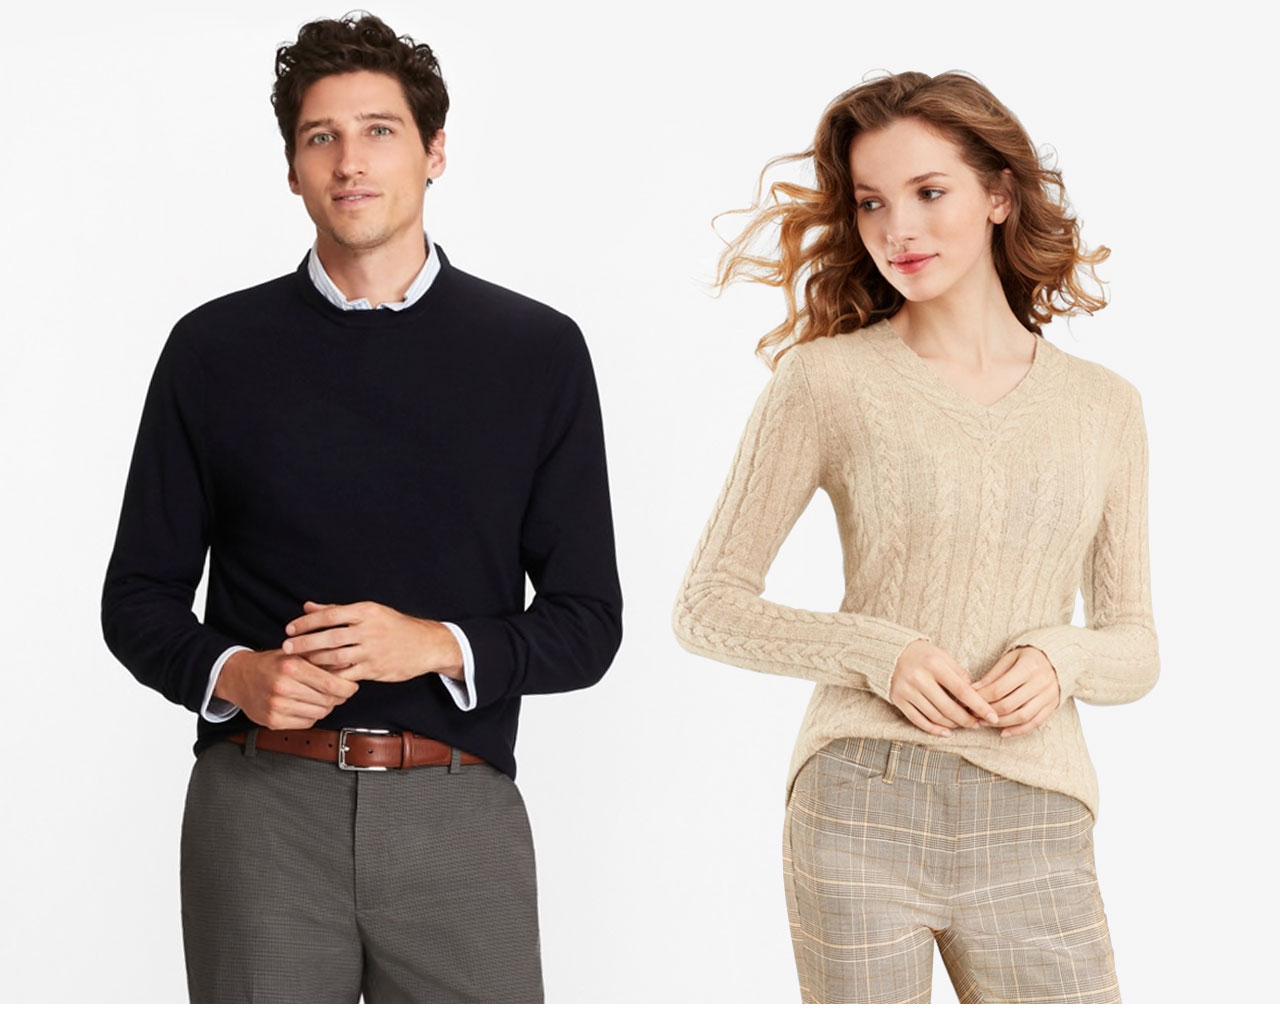 Keep It Neutral - Our lightweight merino sweaters have the perfect feel for fall. Available in neutral shades, they can be easily worn alone or over your favorite shirt.